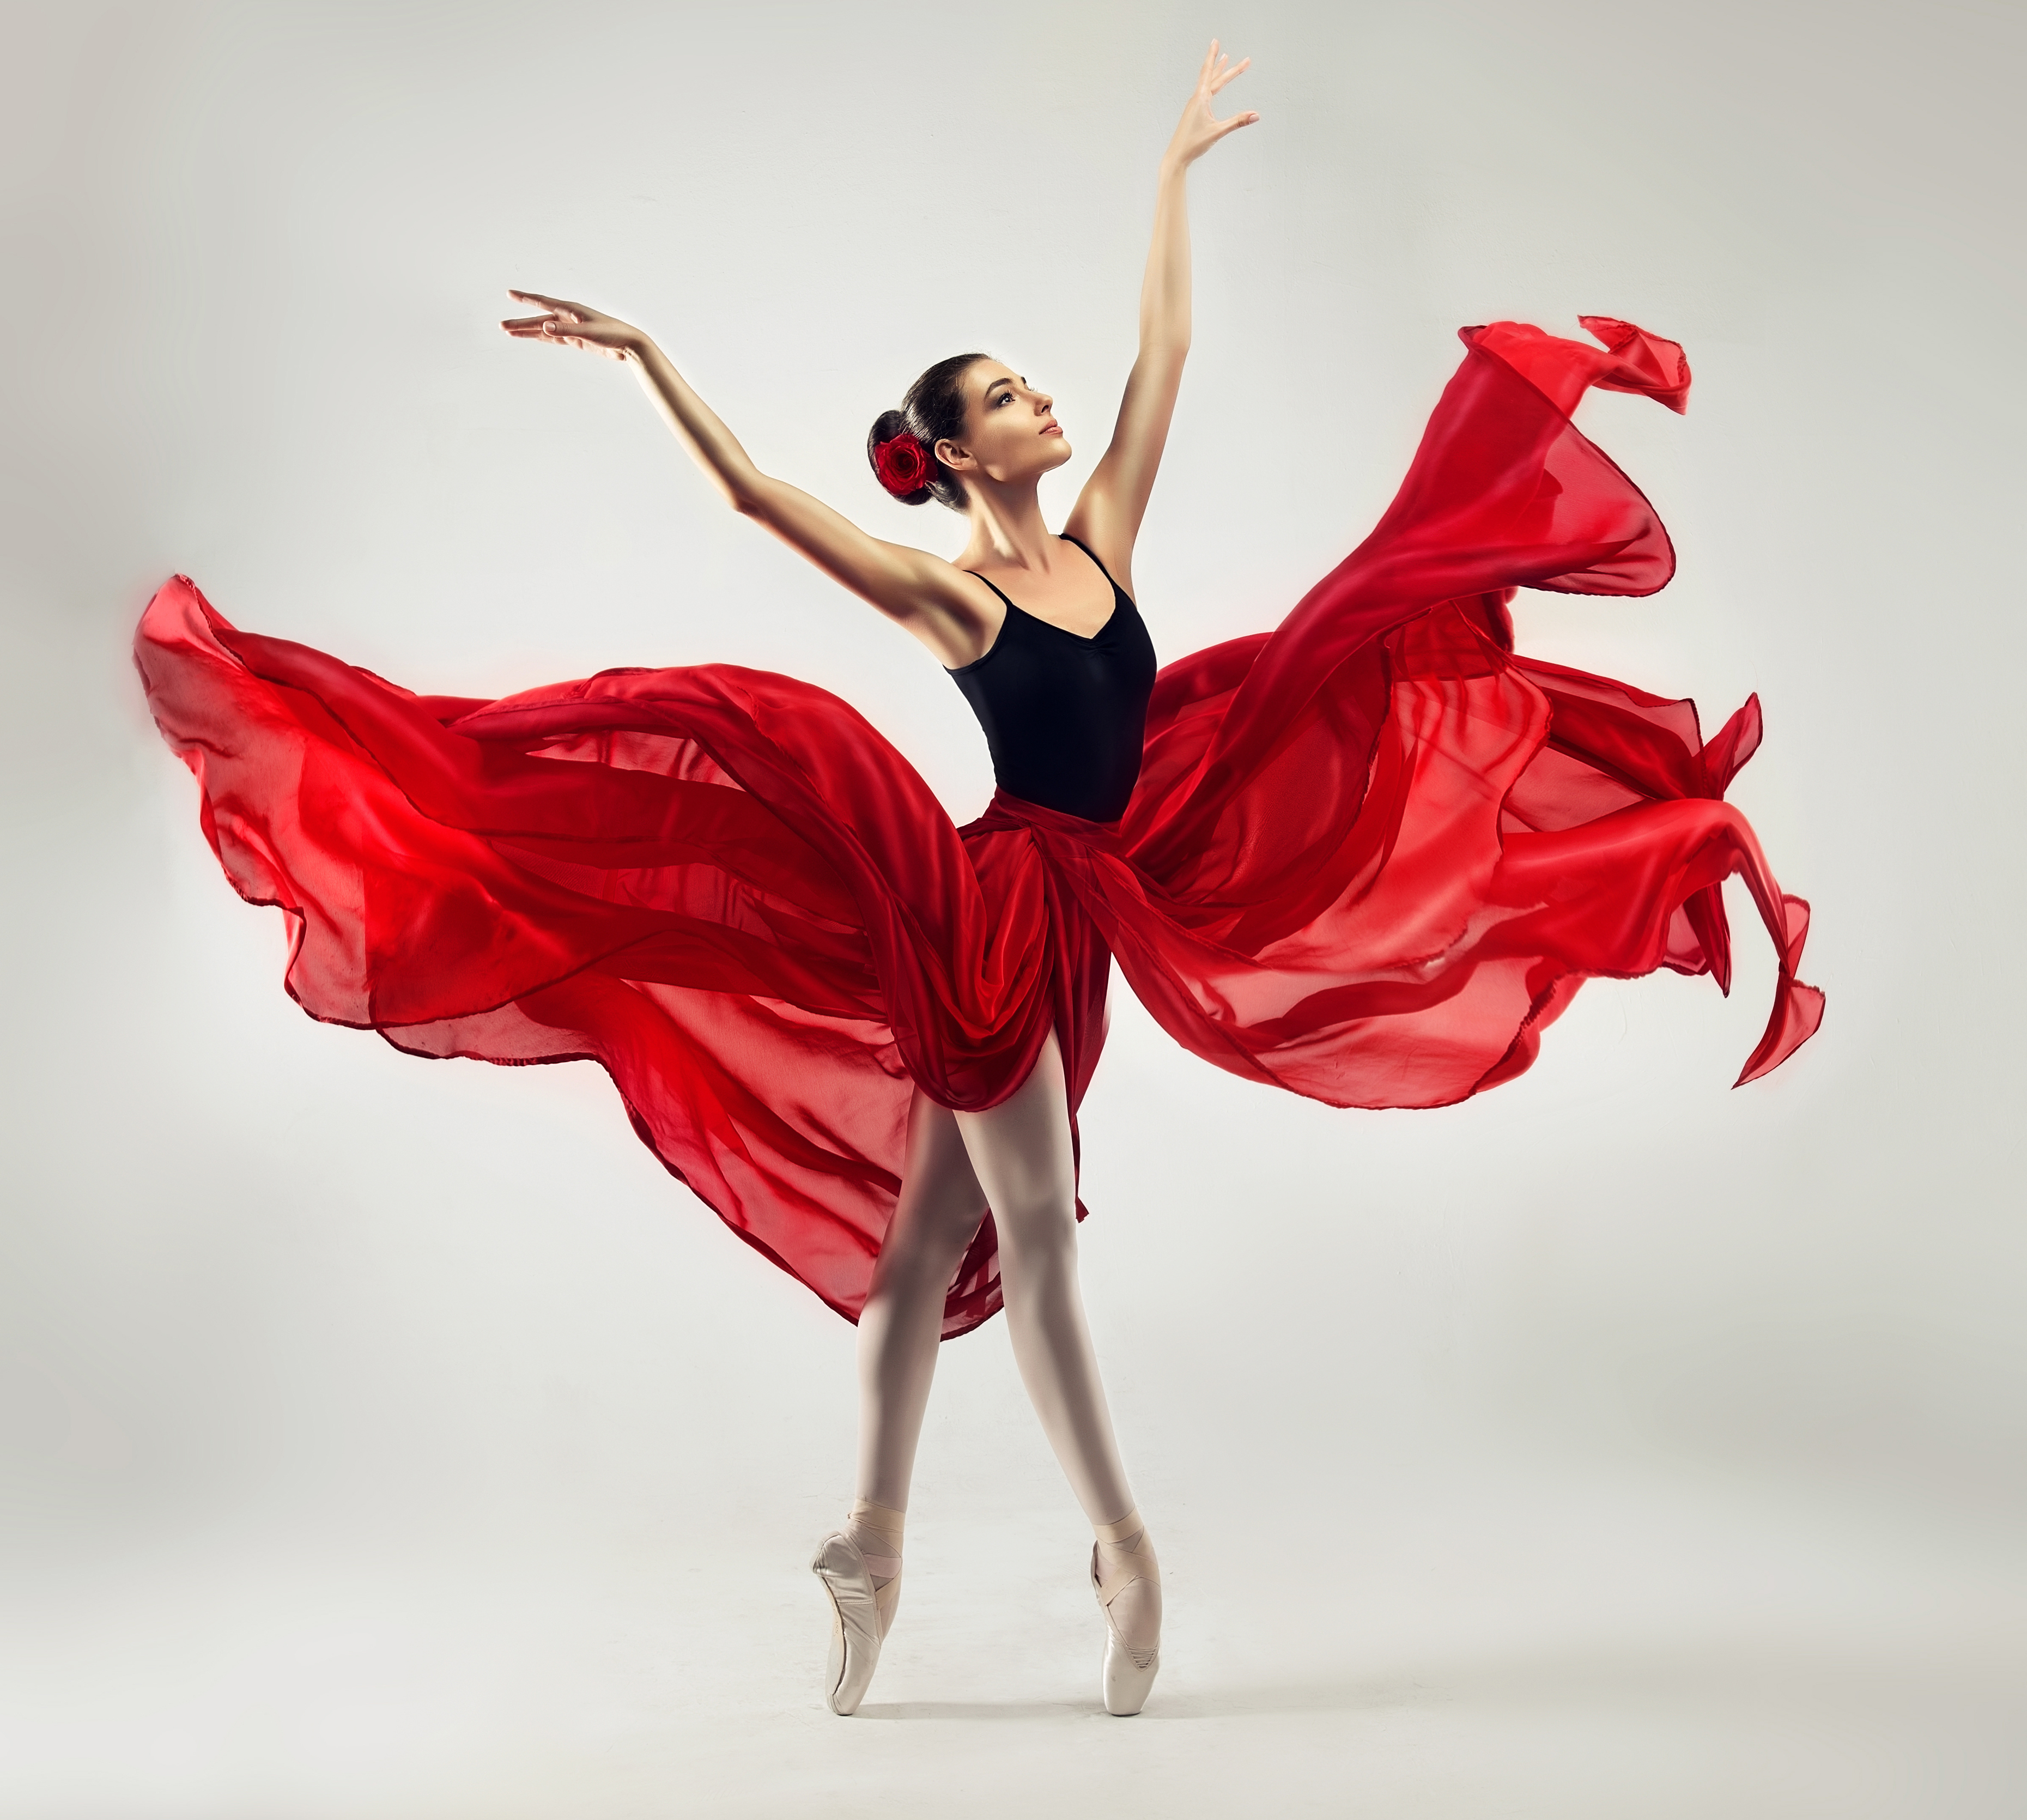 Ballet Hd Wallpaper Background Image 3720x3340 Id 999807 Wallpaper Abyss